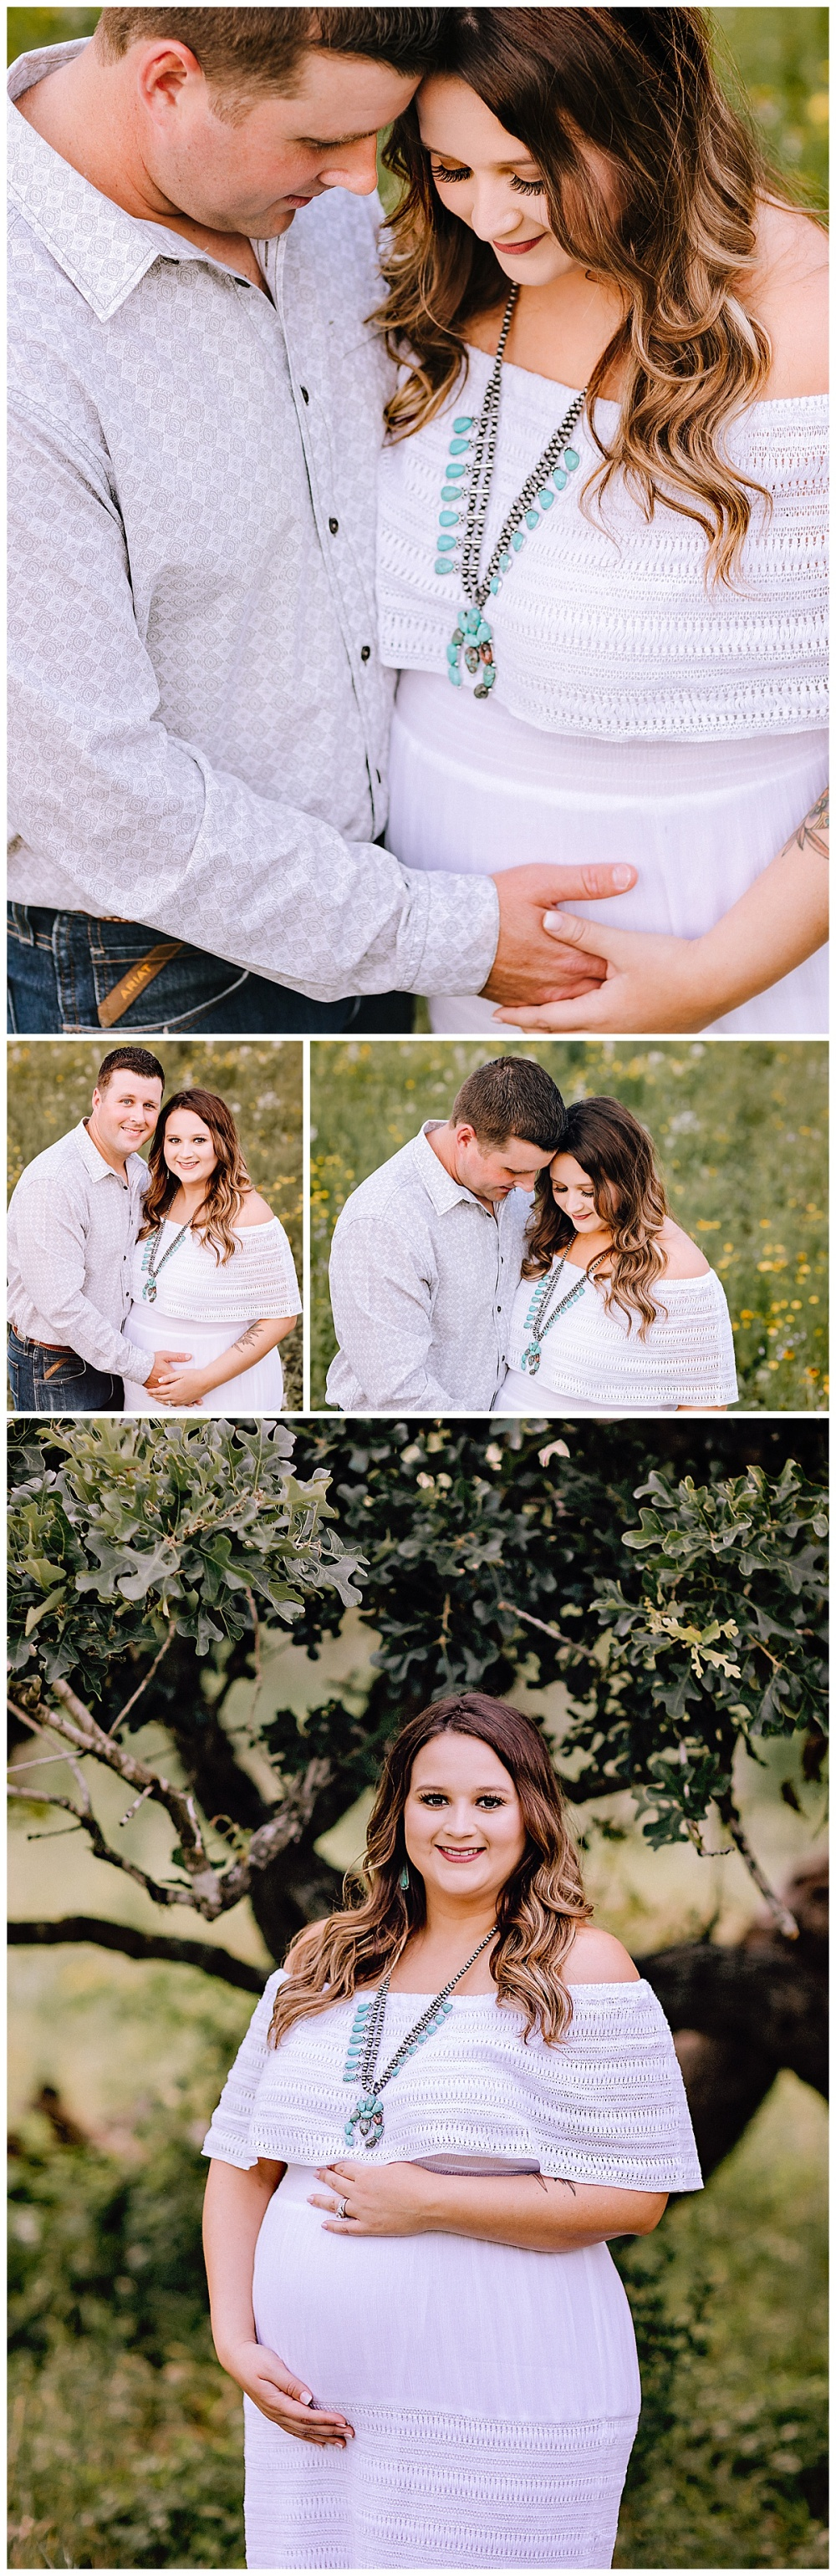 Rustic-Maternity-Session-Texas-Sunset-Carly-Barton-Photography_0069.jpg